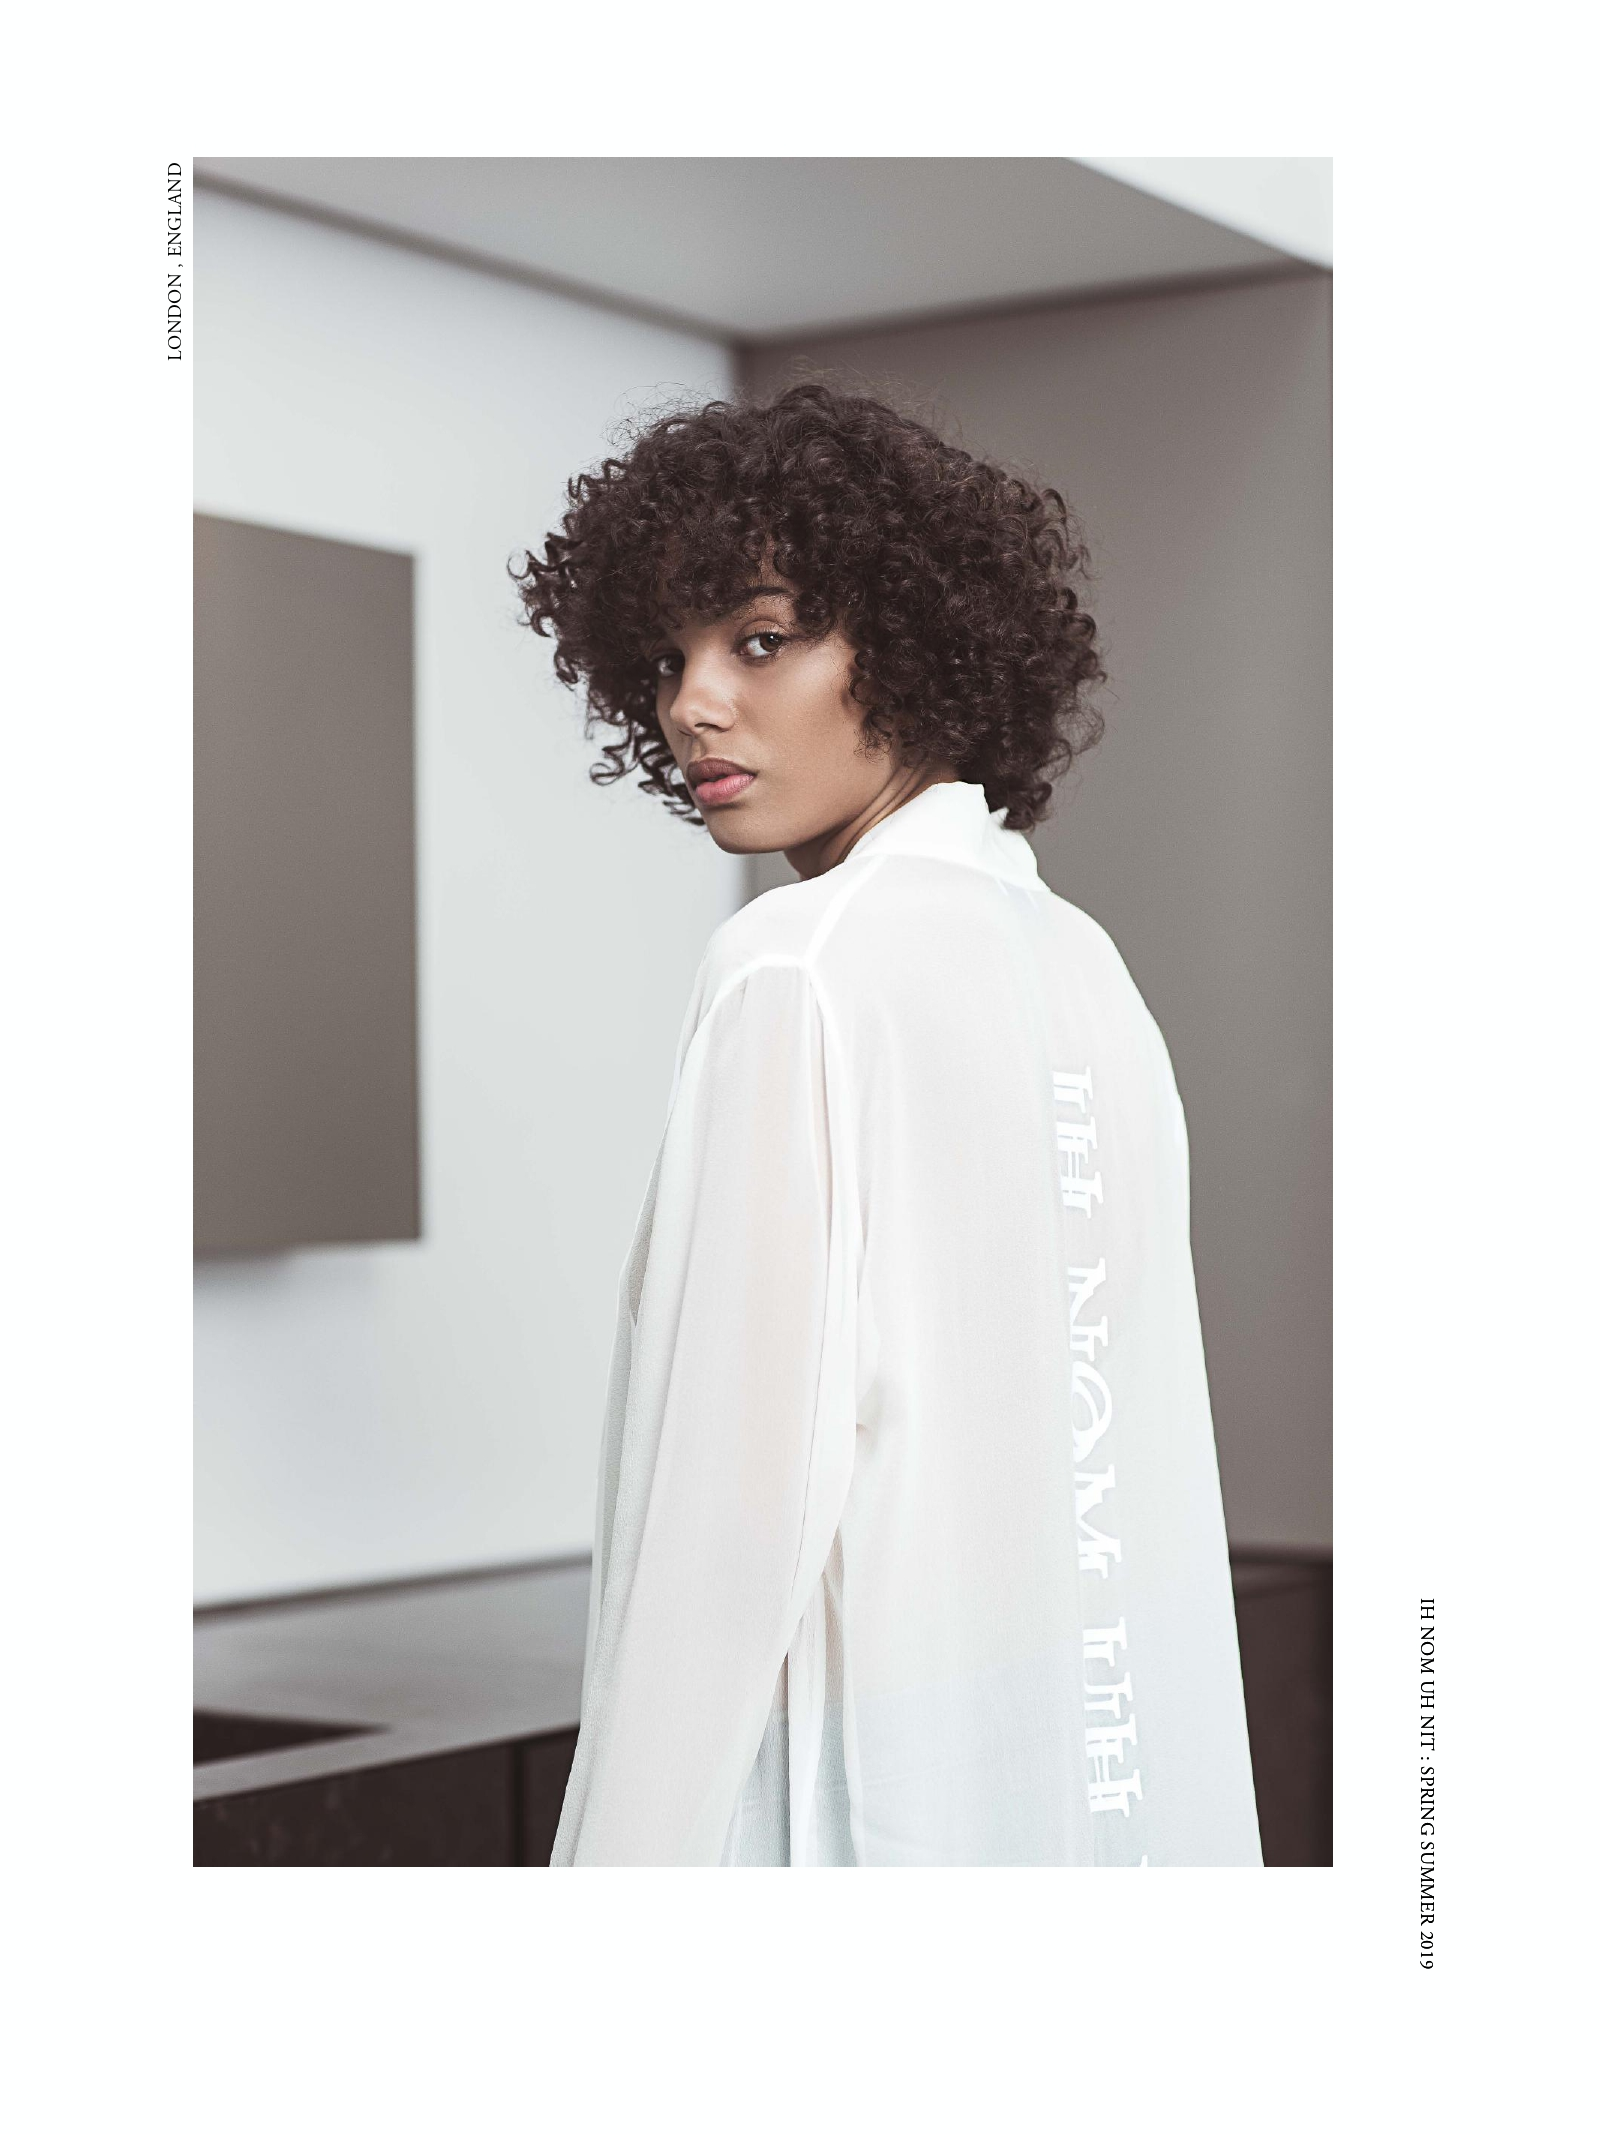 SS19 WOMAN LOOK BOOK_pages-to-jpg-0010.jpg